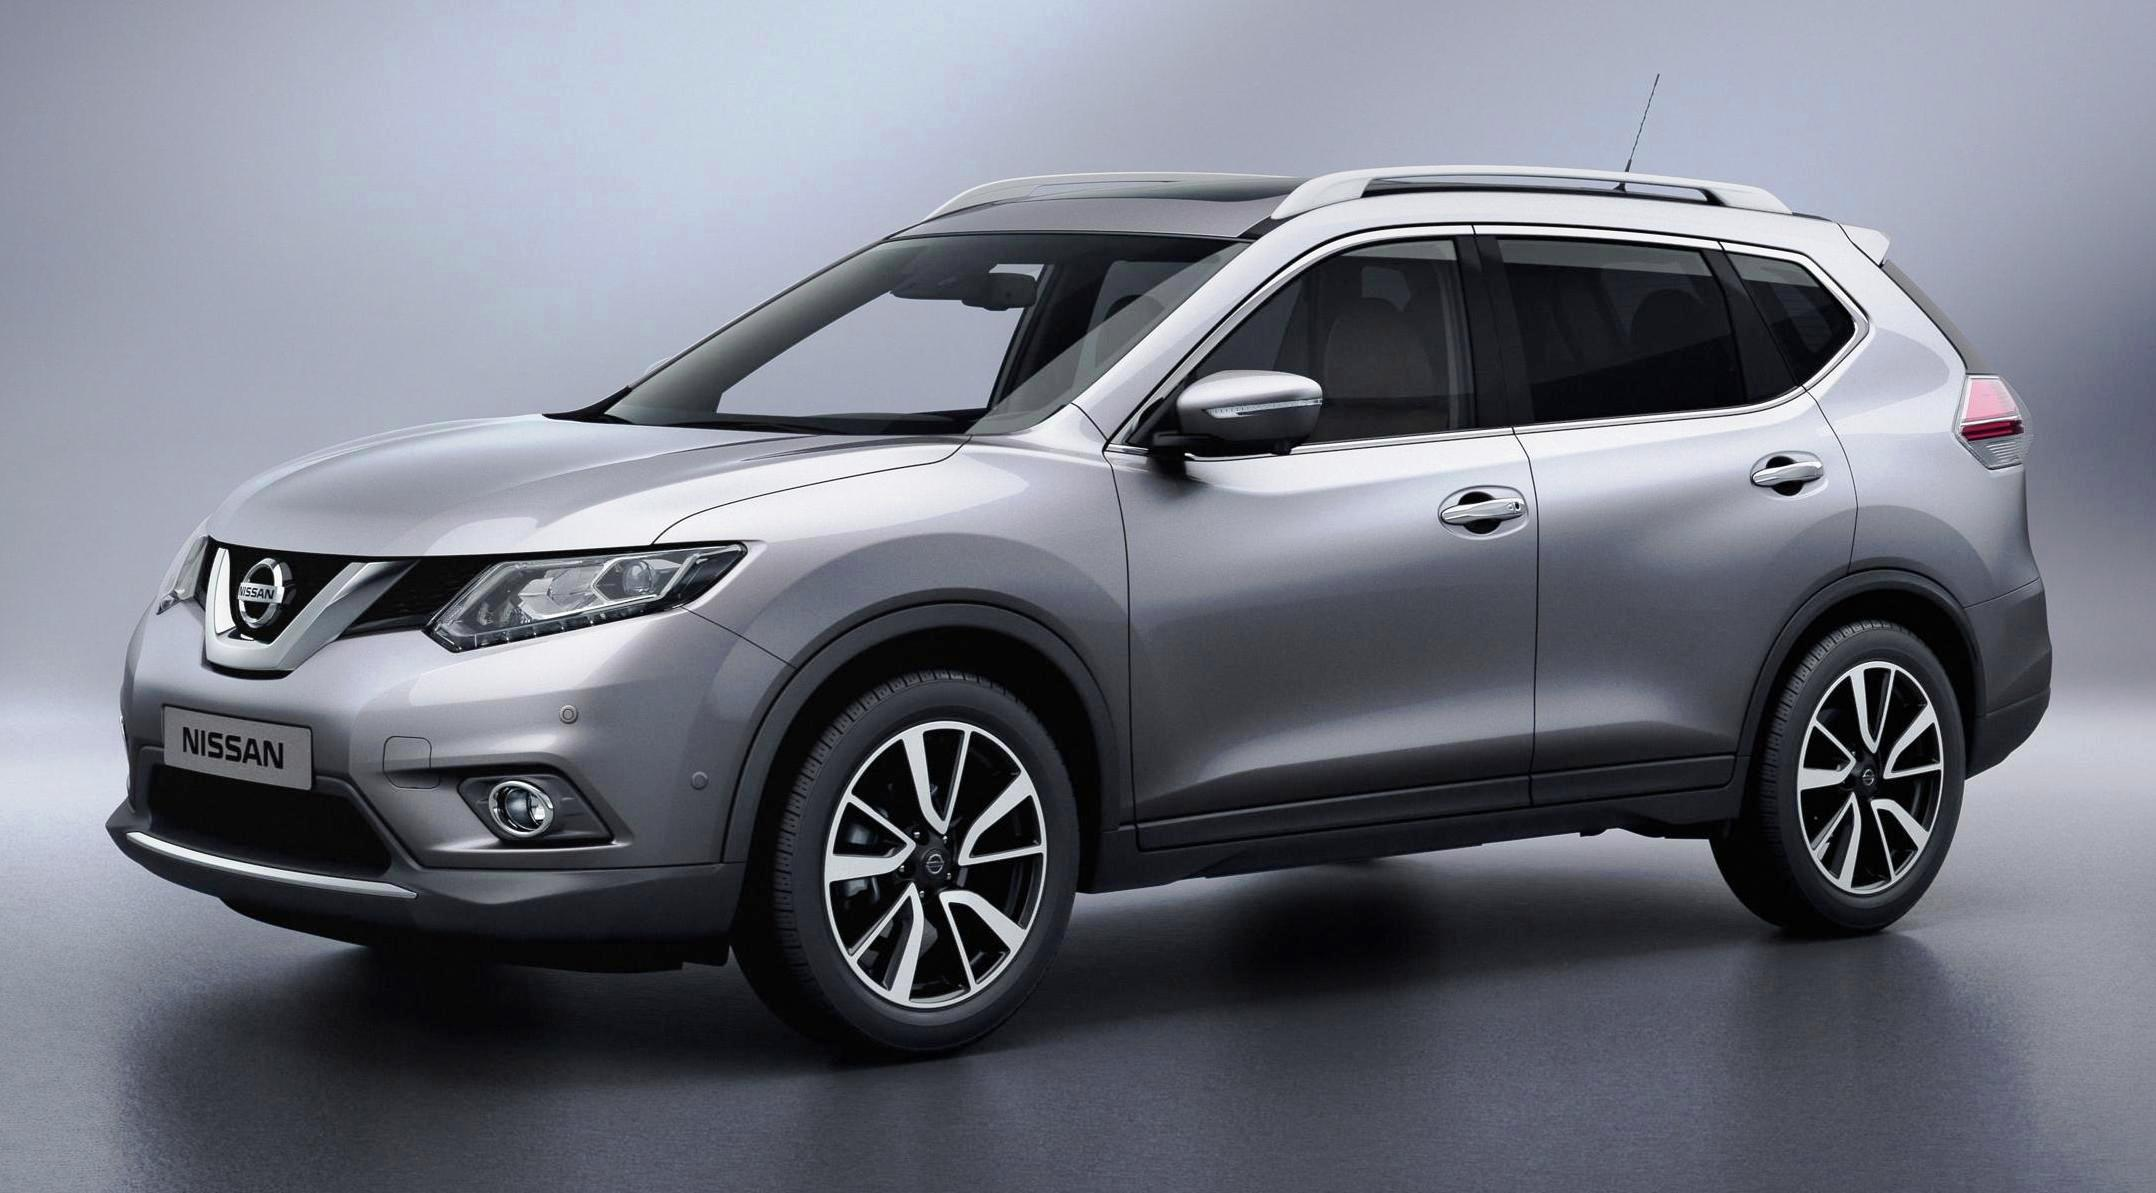 nissan x-trail images #13